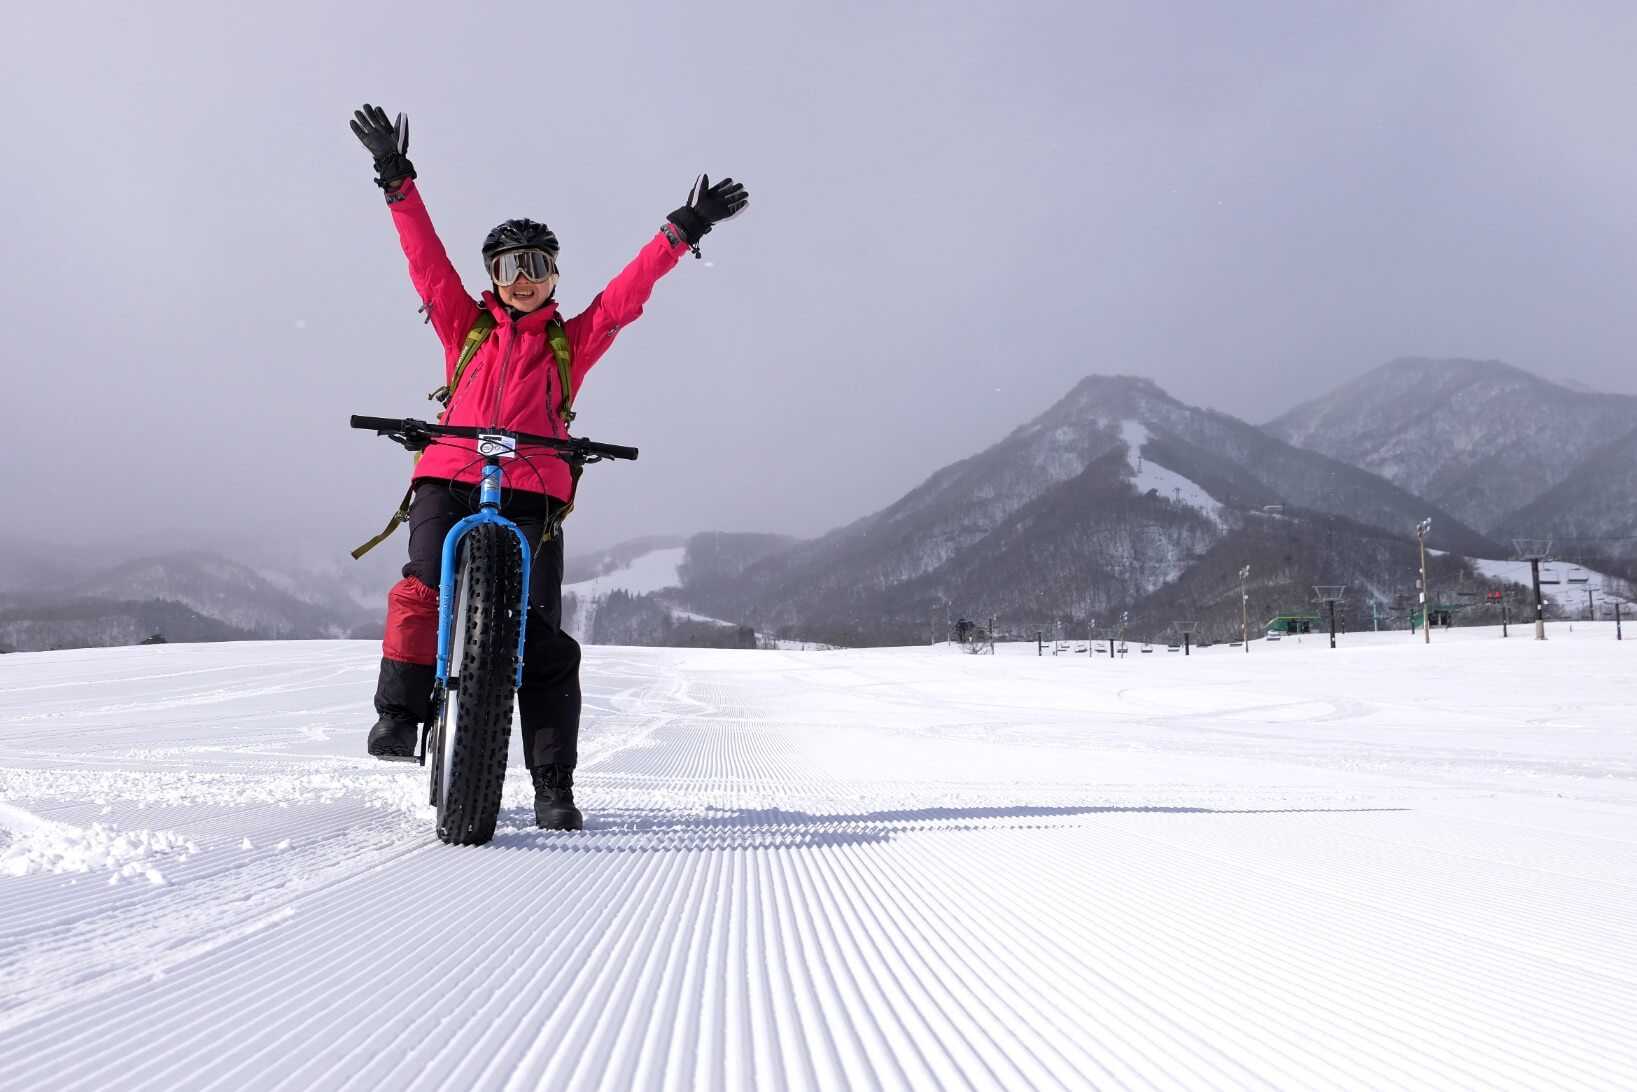 Fat Biking on the Slopes of Tsugaike Kogen Ski Resort, Nagano